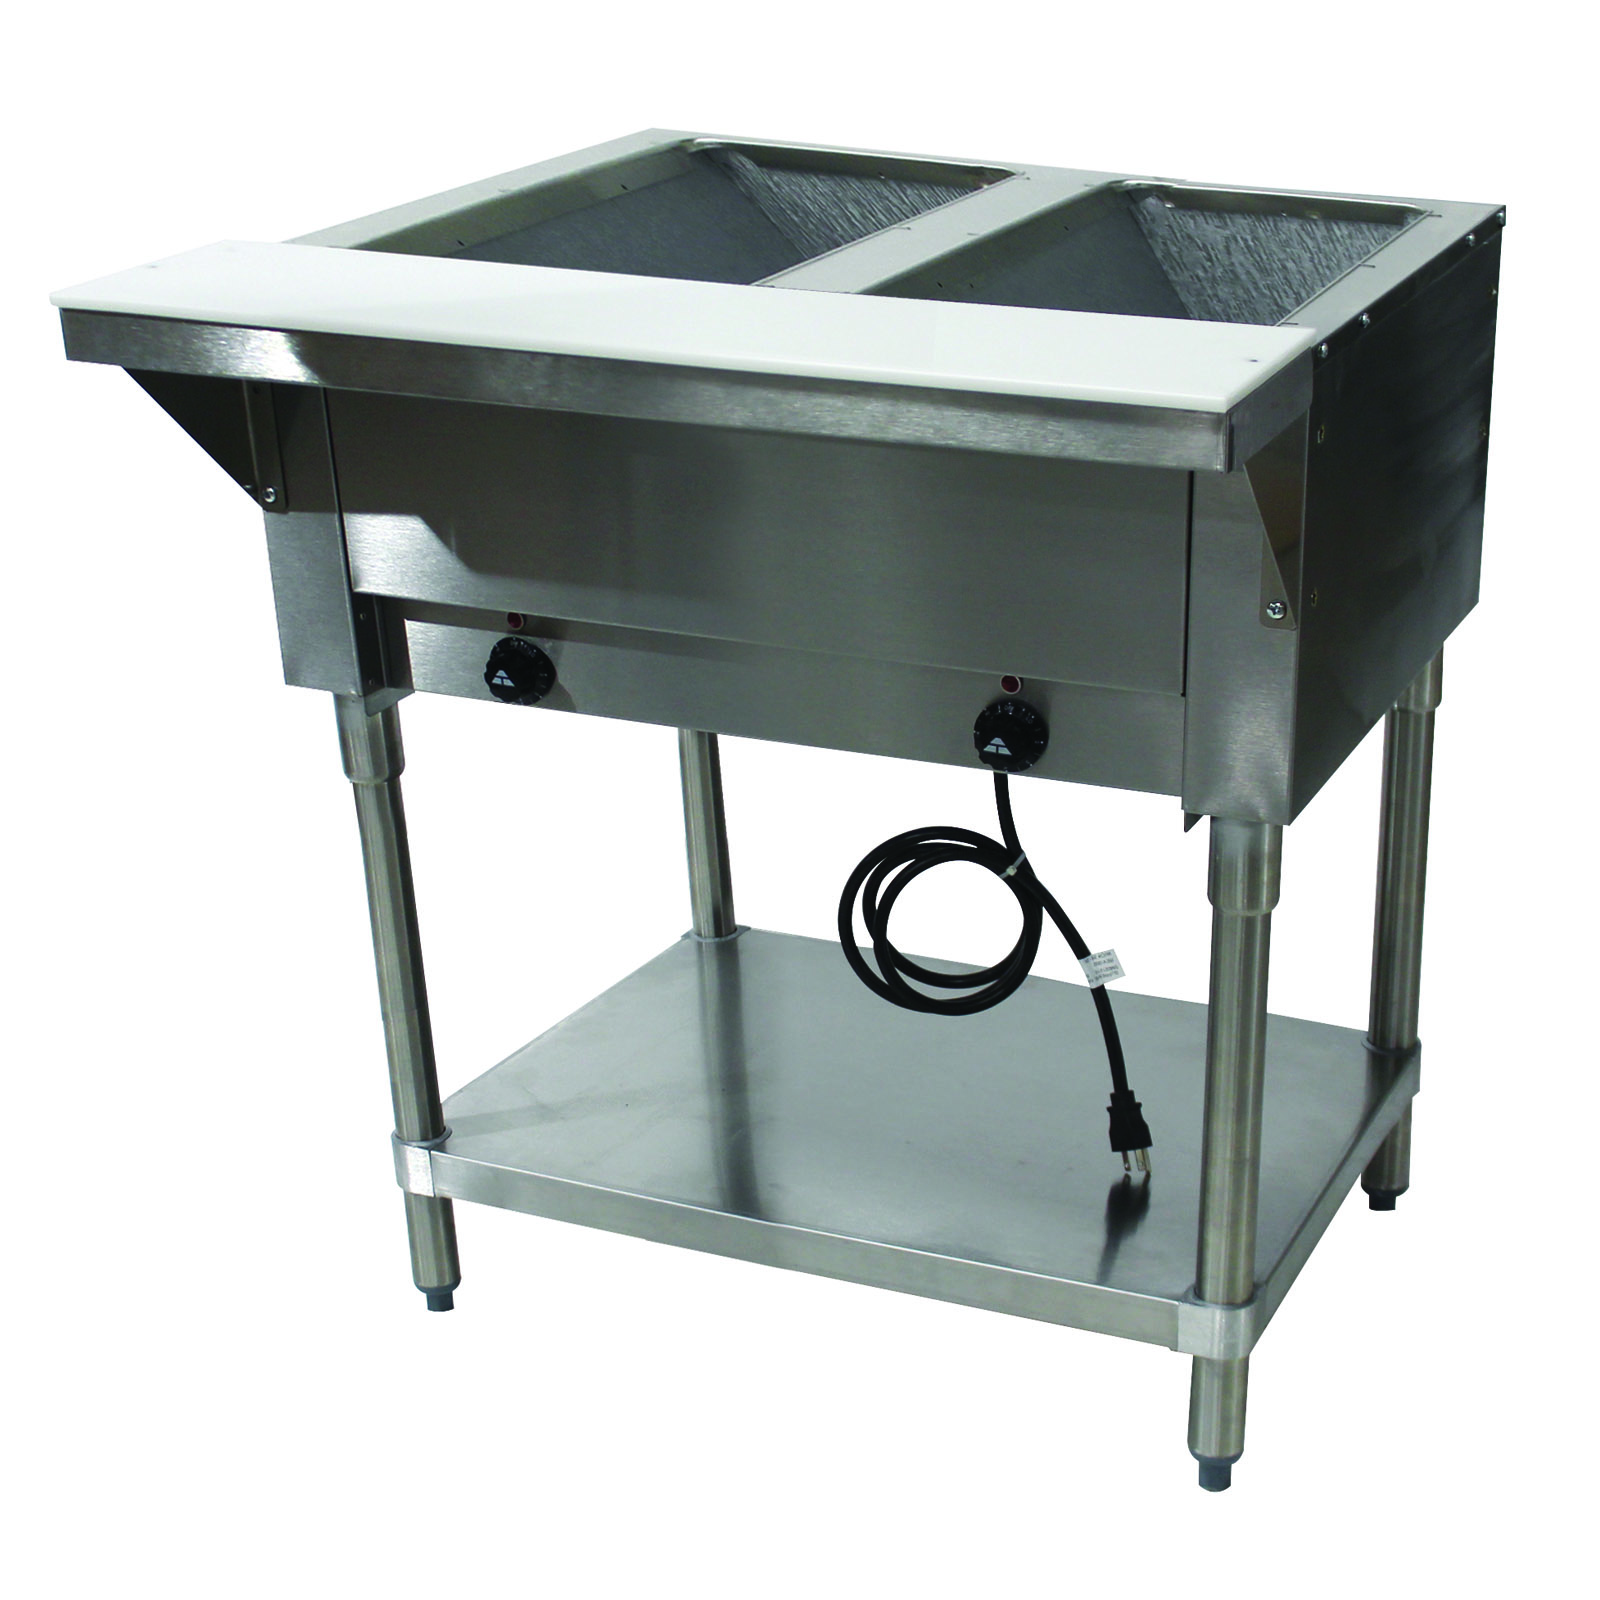 Advance Tabco HF-2E-120 serving counter, hot food, electric